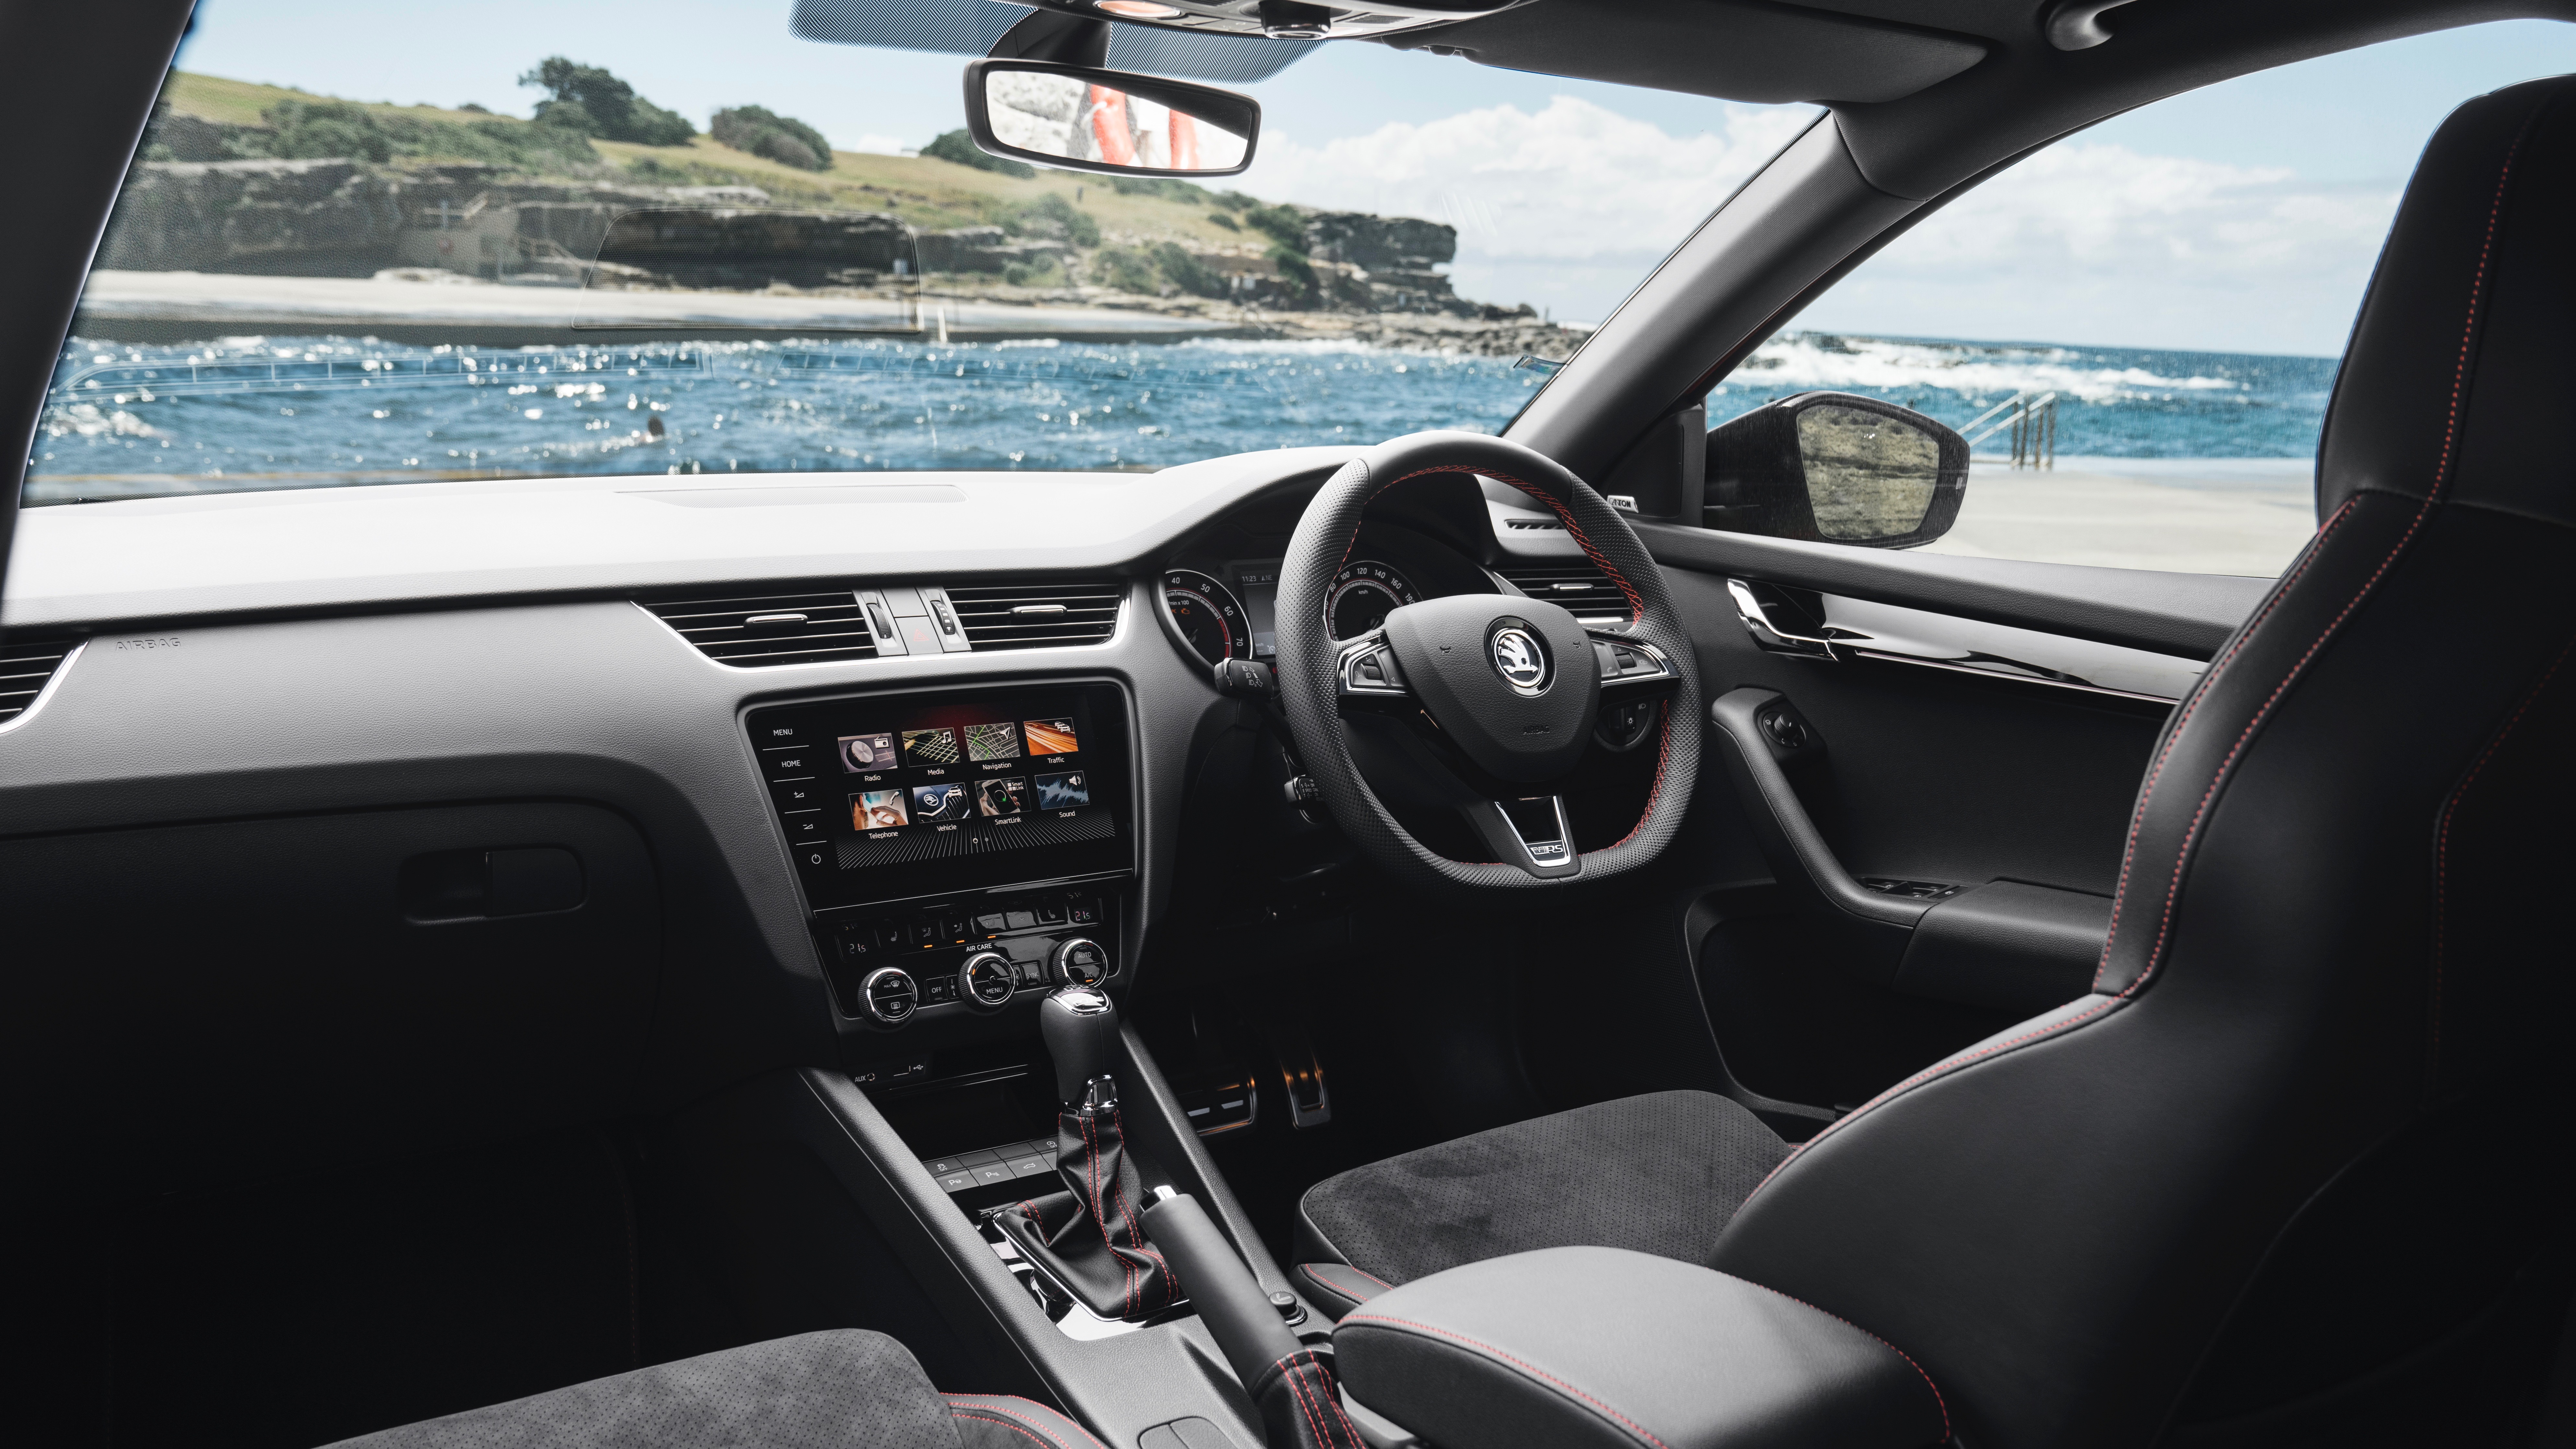 2018 Skoda Octavia RS245 dashboard